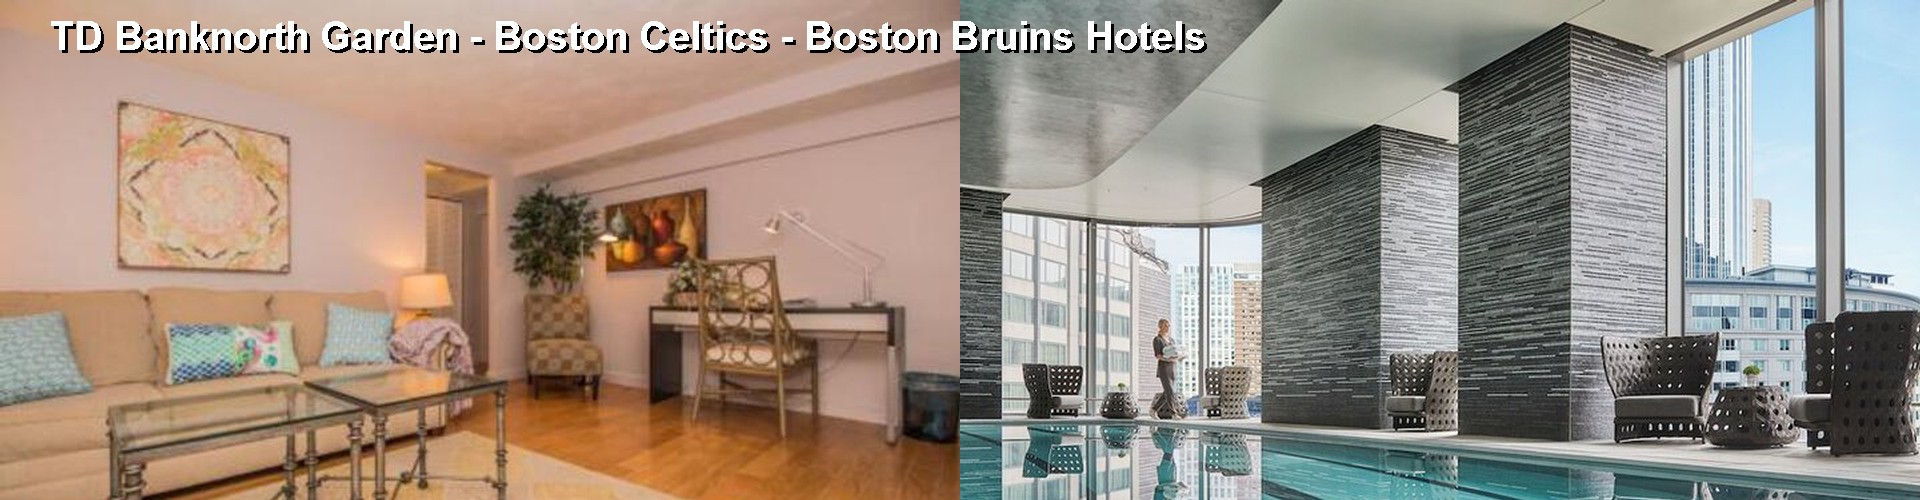 52 Hotels Near TD Banknorth Garden Boston Celtics Boston